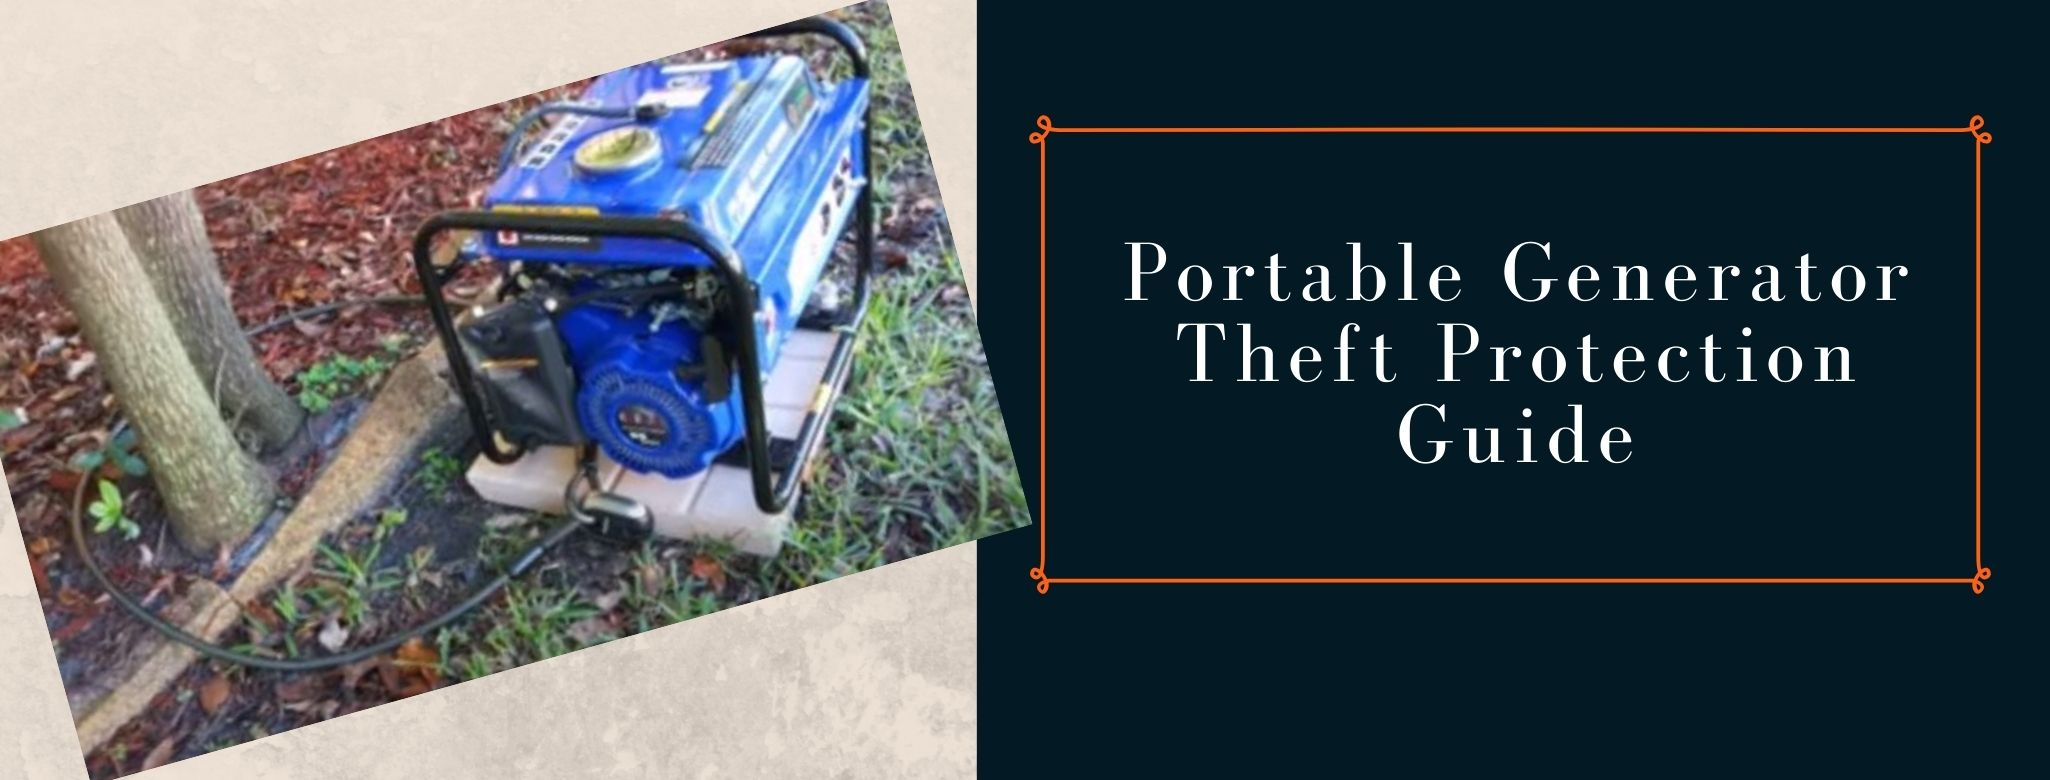 Tips to Make your Portable Generator safe and secure